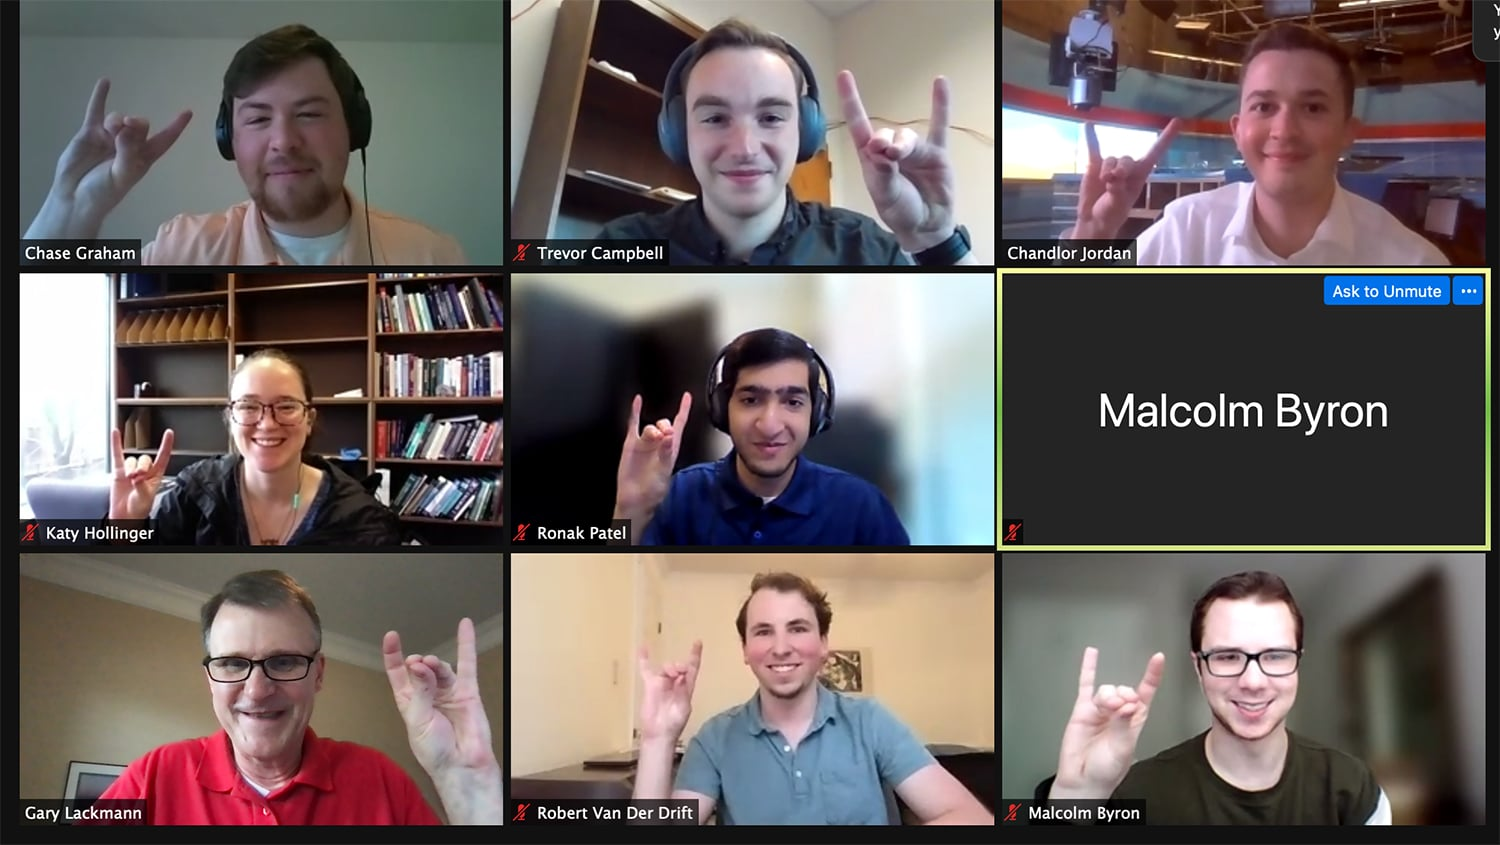 A screenshot of a Zoom meeting with the WxChallenge team members holding up wolf hands